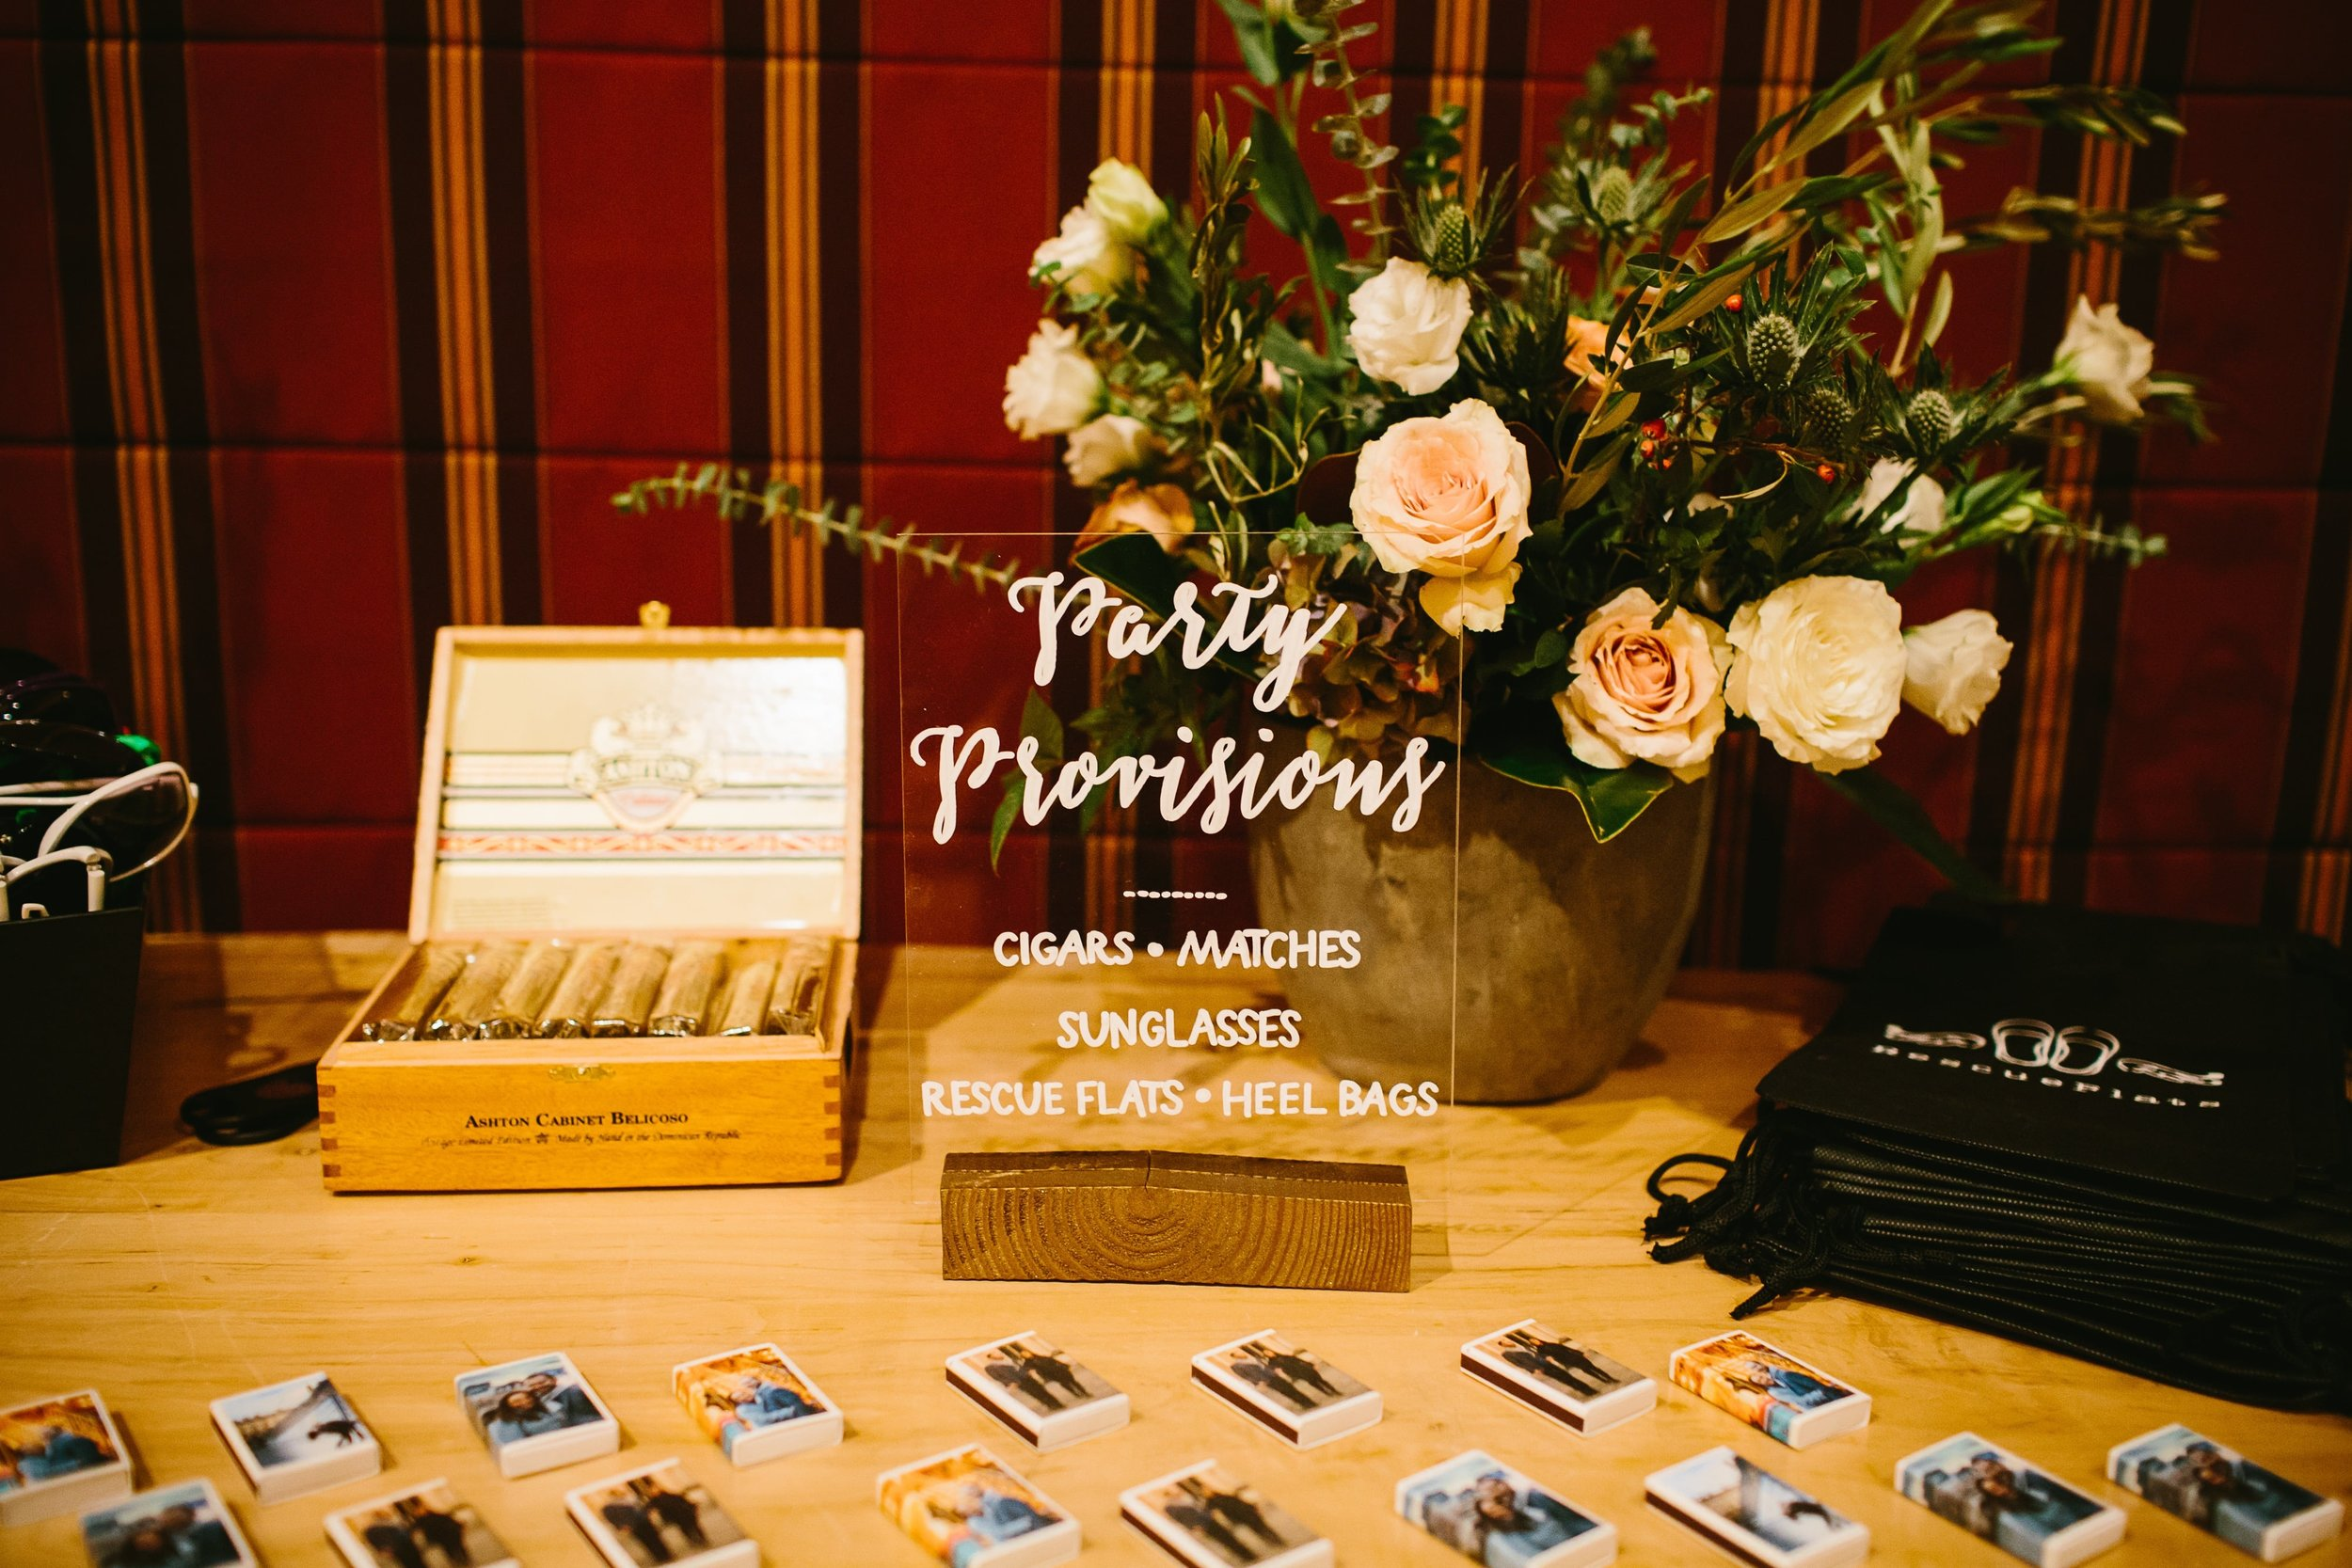 42 Our party favor table included cigars with custom labels, matches, Rescue Flats, and sunglasses